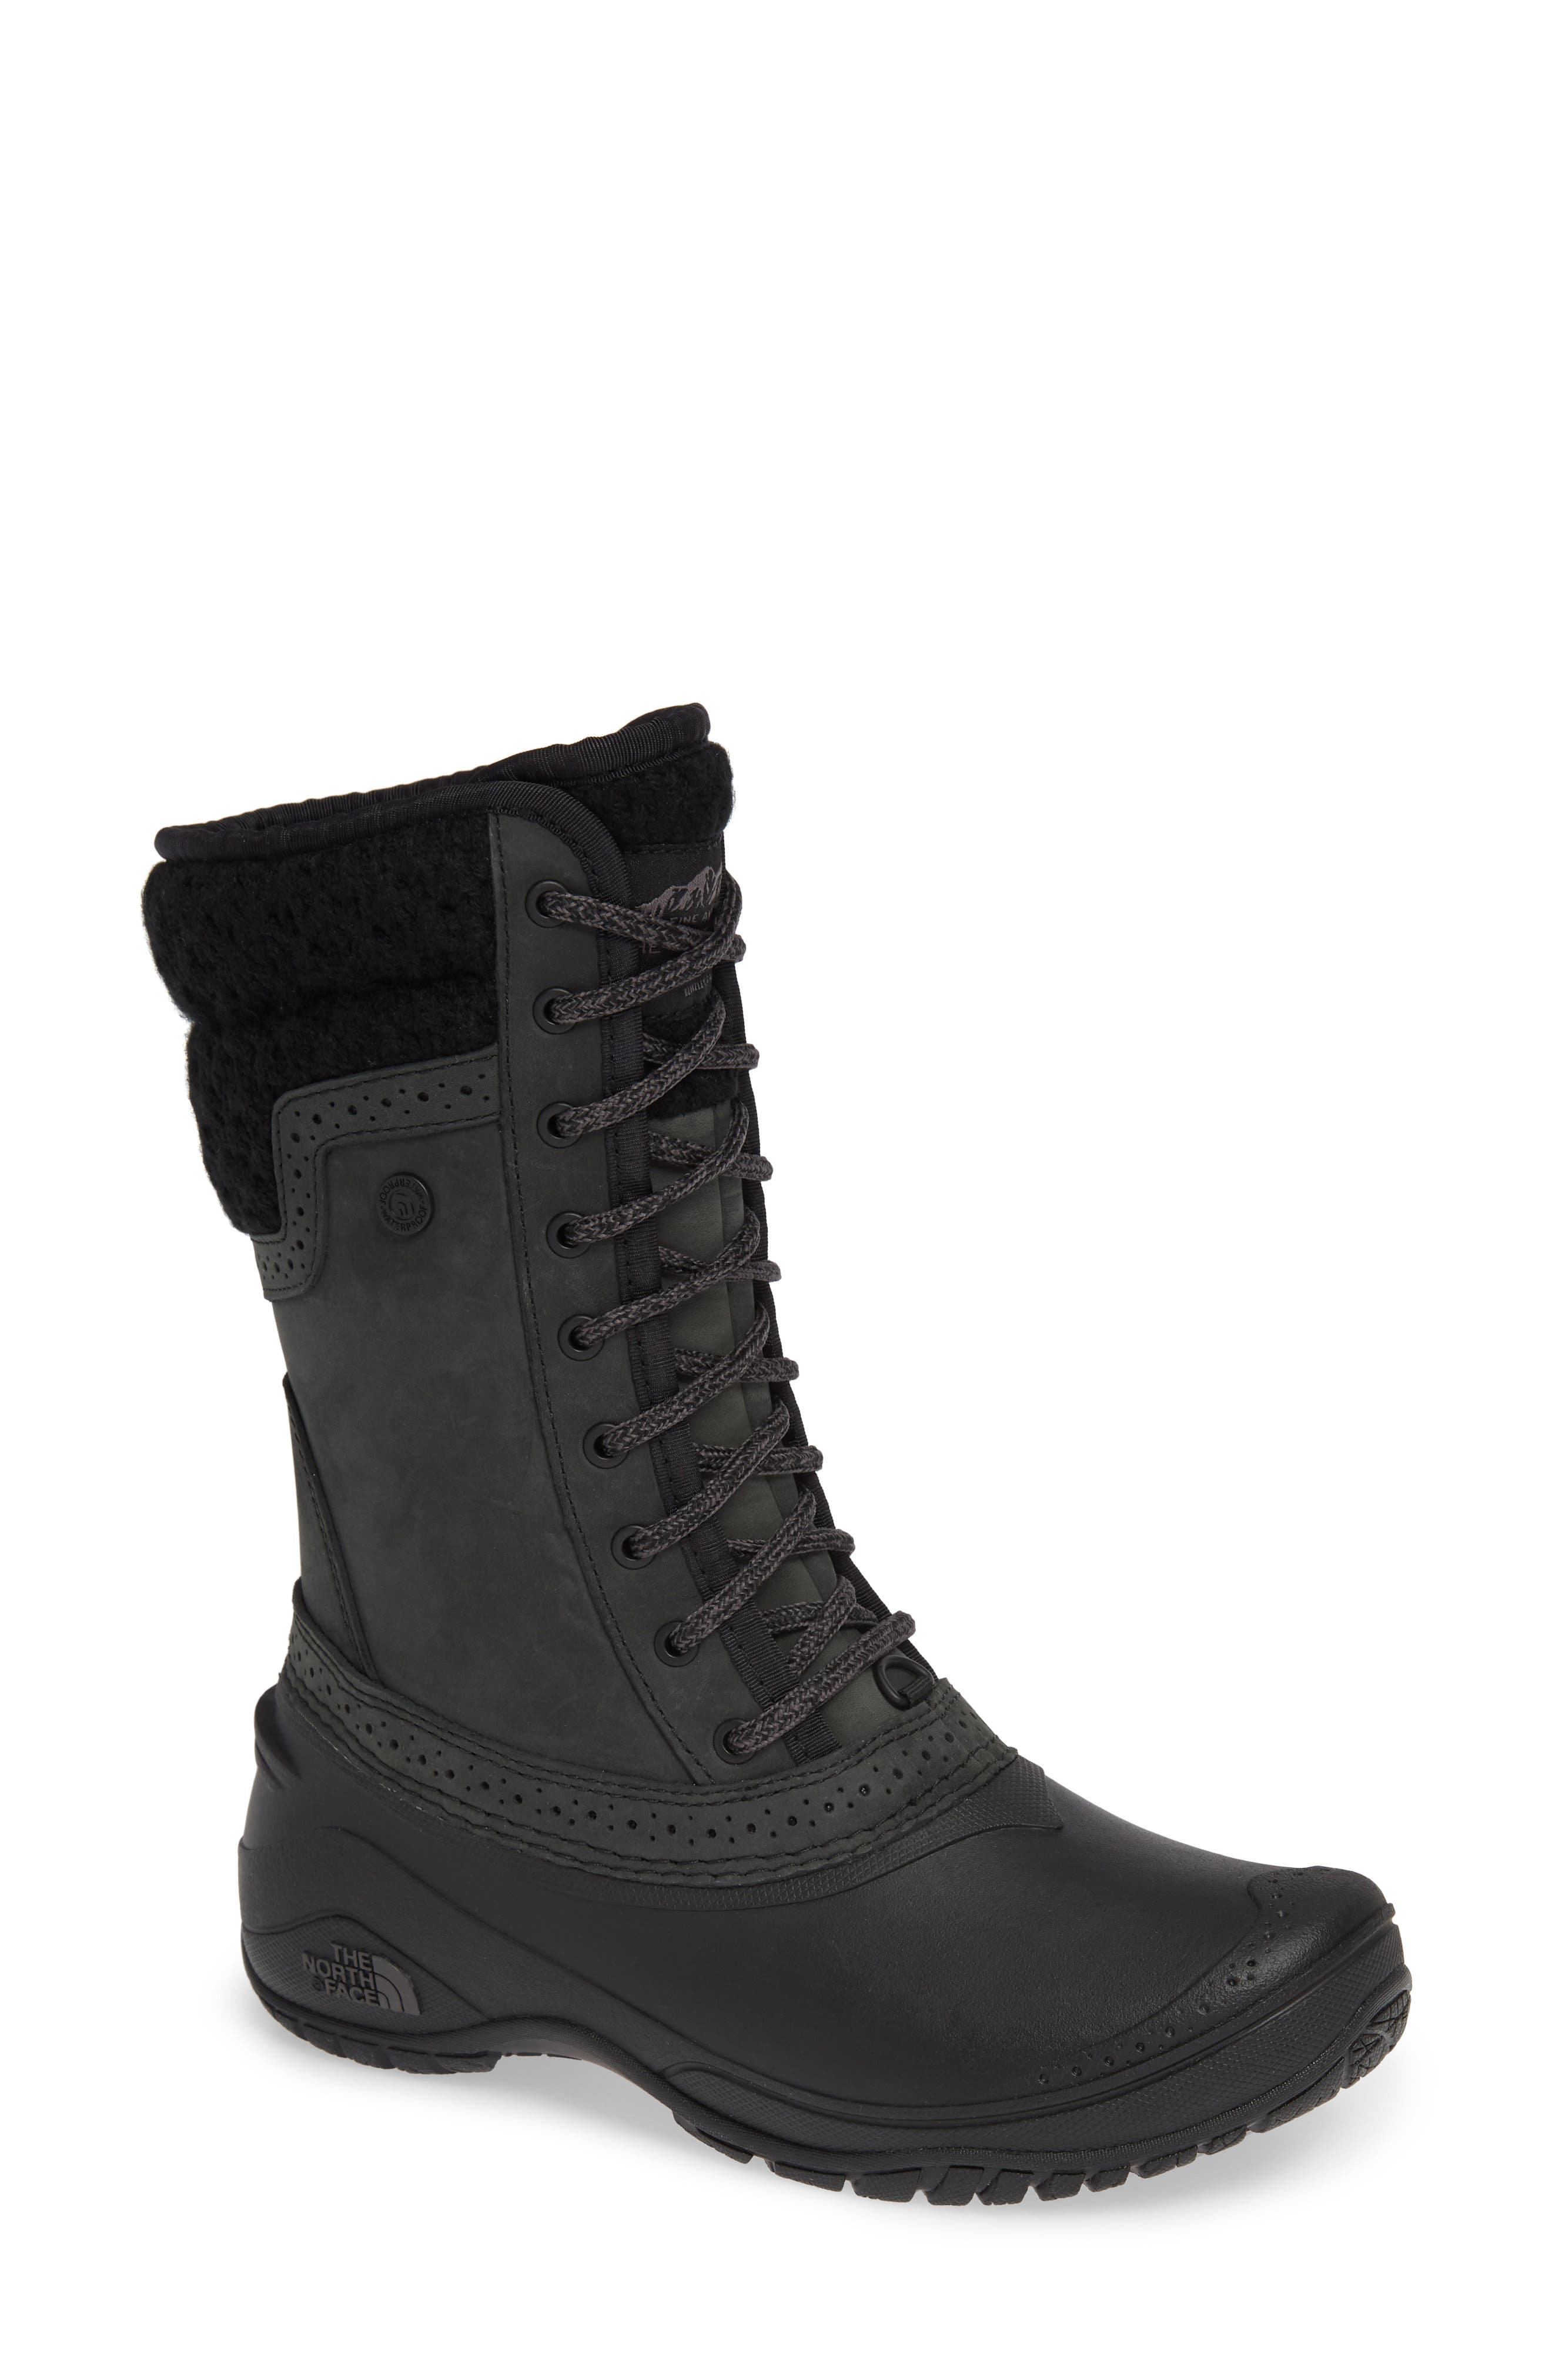 The North Face Shellista Waterproof Insulated Snow Boot, Black